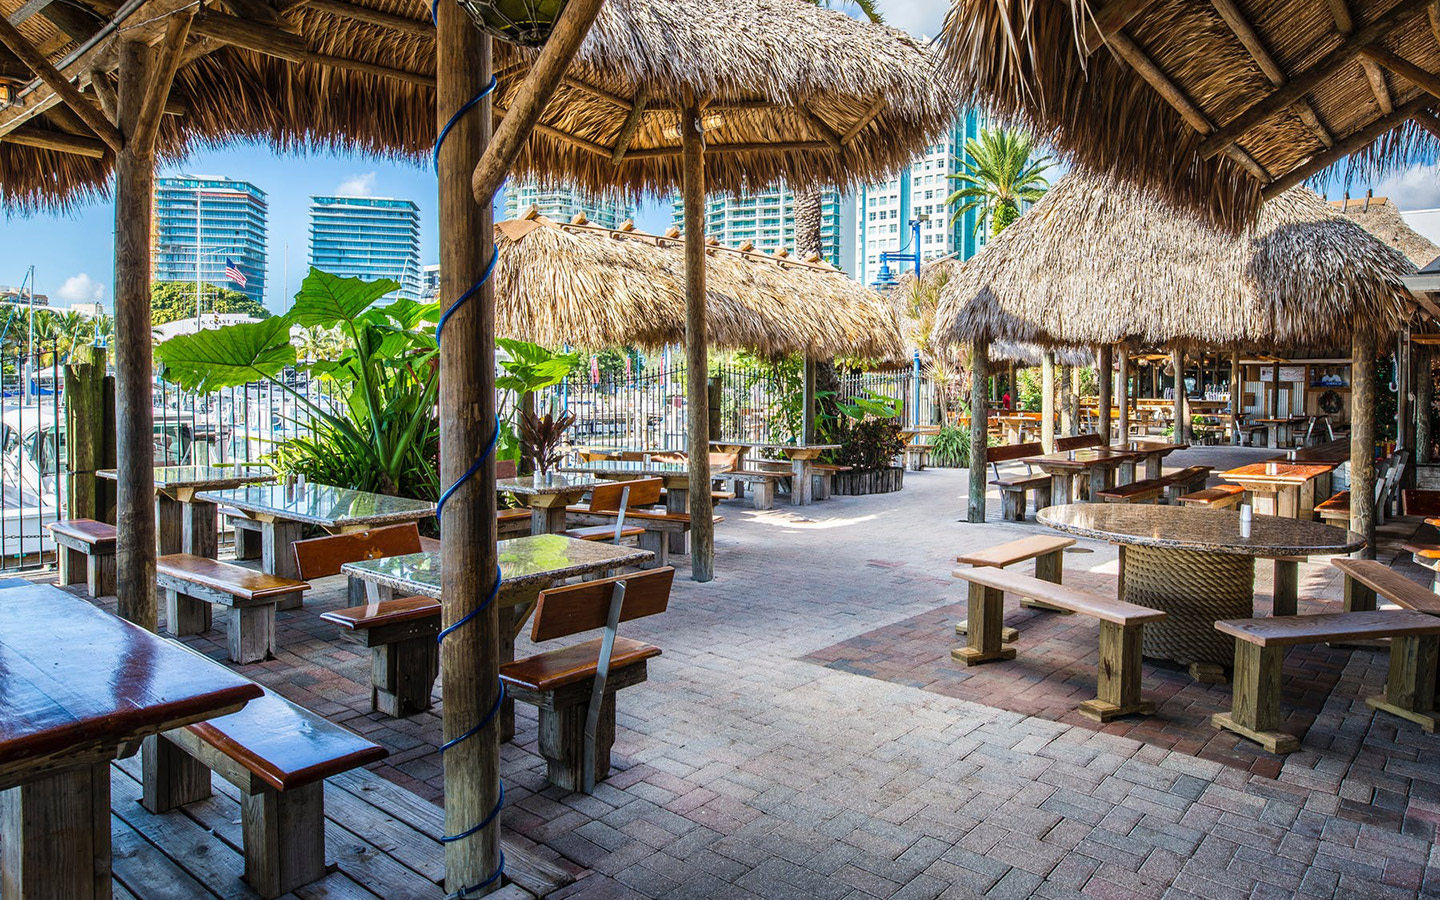 Monty's Raw Bar - Coconut Grove